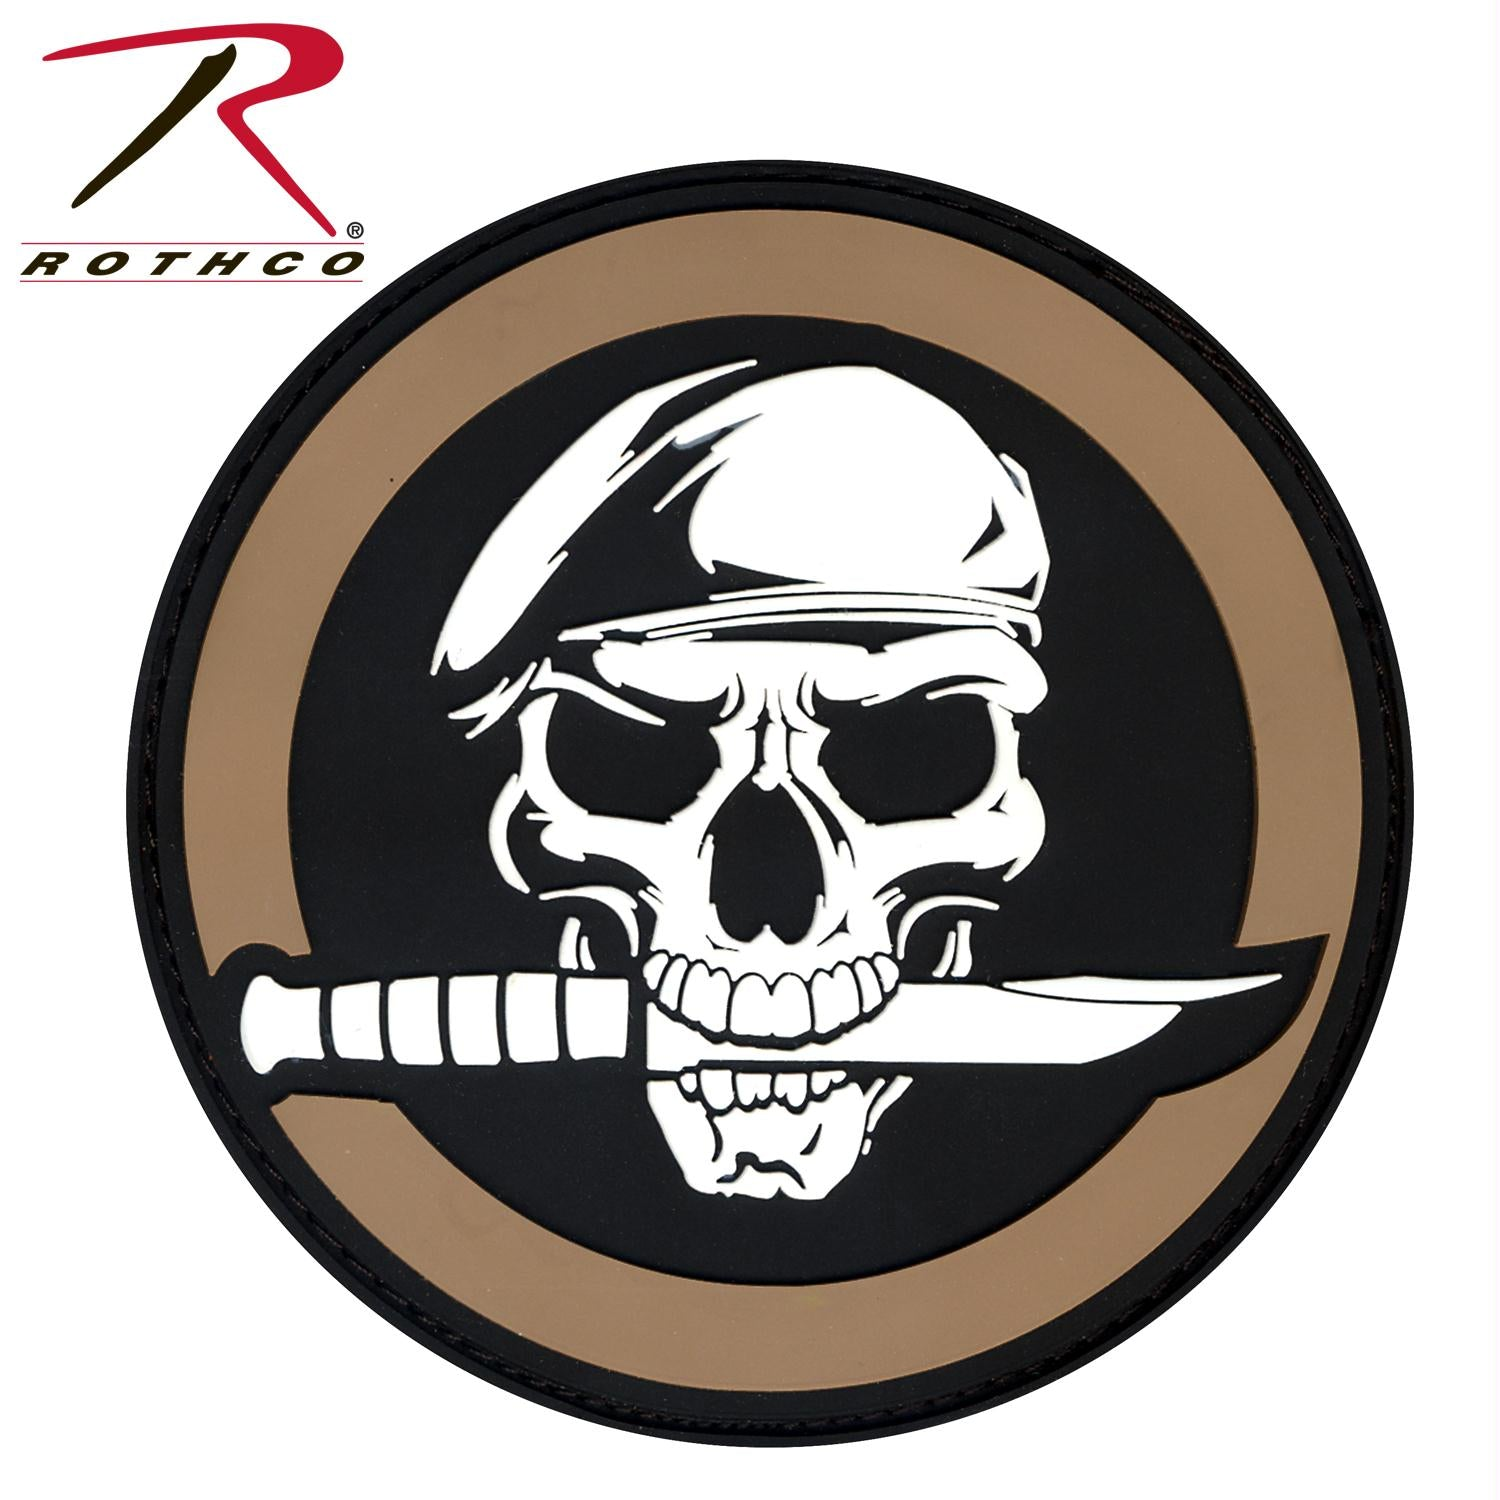 Rothco PVC Military Skull & Knife Morale Patch - One Size